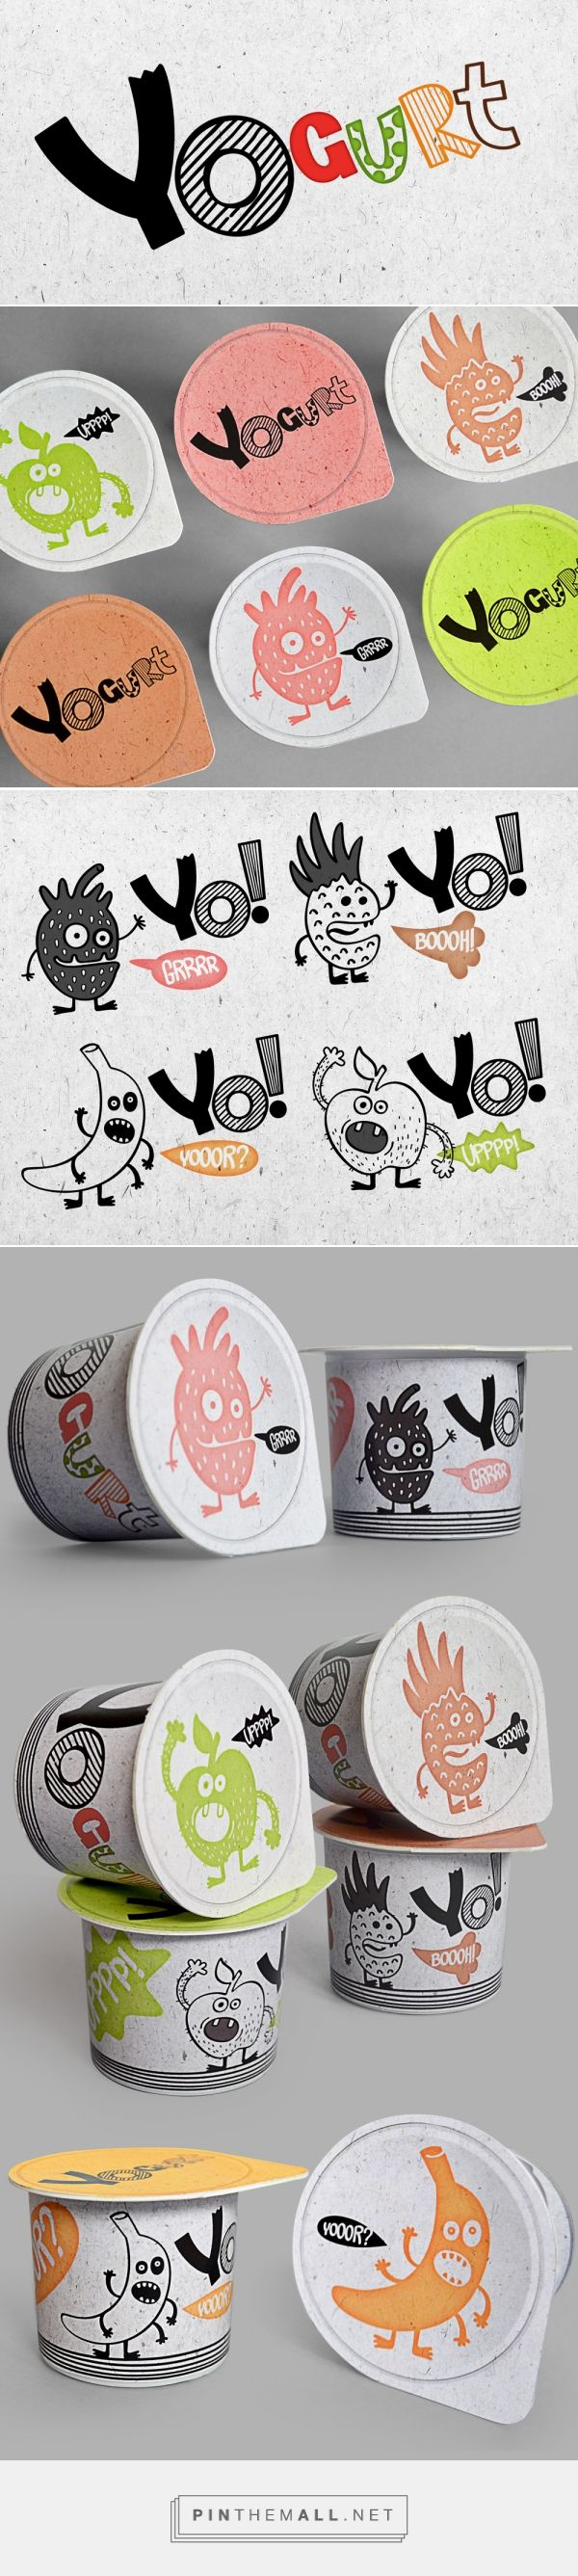 Illustration, graphic design and packaging for YOgurt on Behance by  Anton Danilov Moscow, Russia curated by Packaging Diva PD. The cutest yogurt packaging for the smile file : )